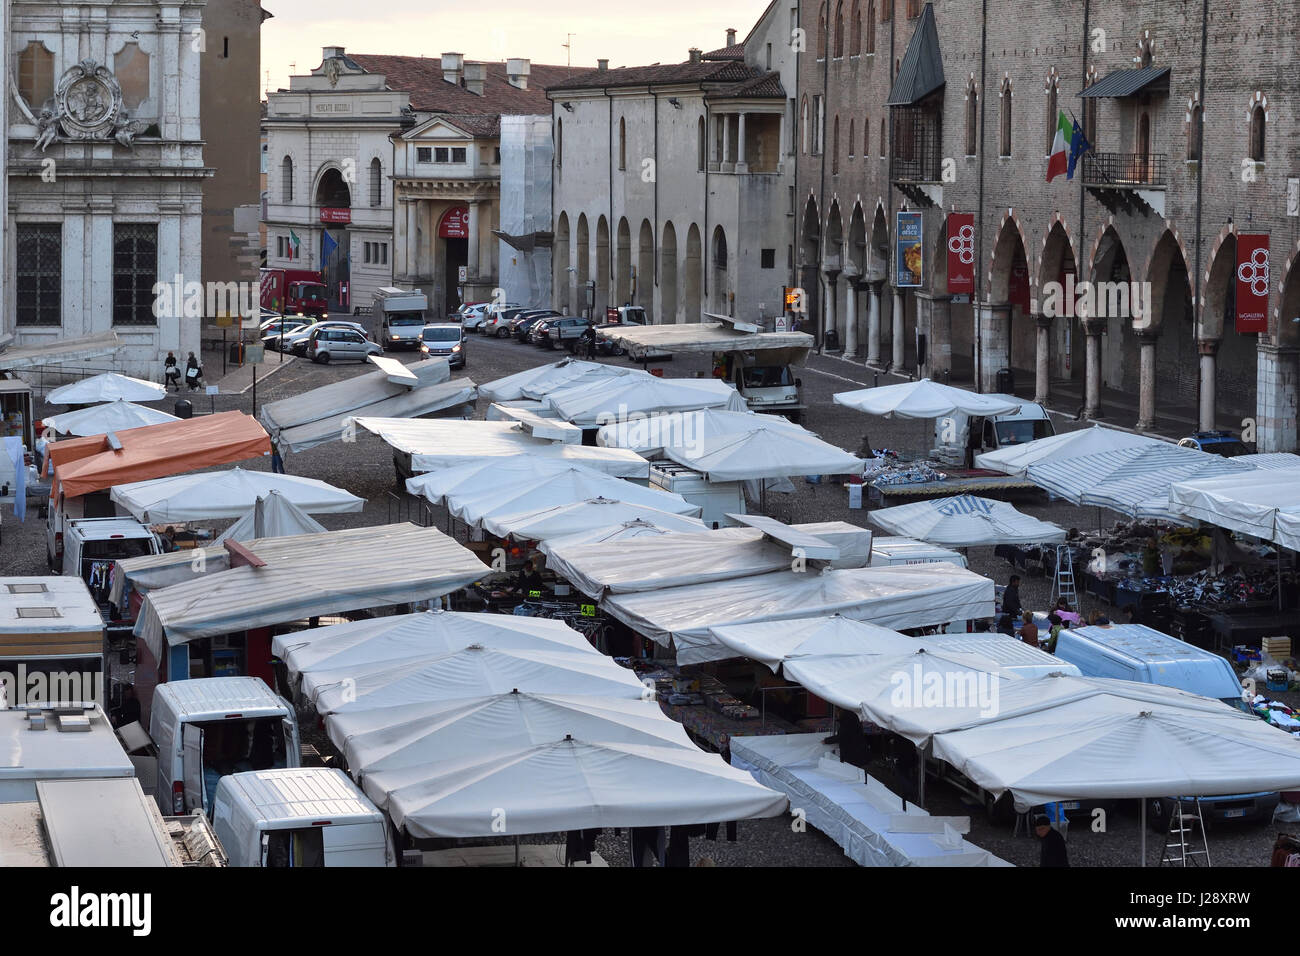 Mantua, Piazza Sordello on a market day in the early morning light - Stock Image